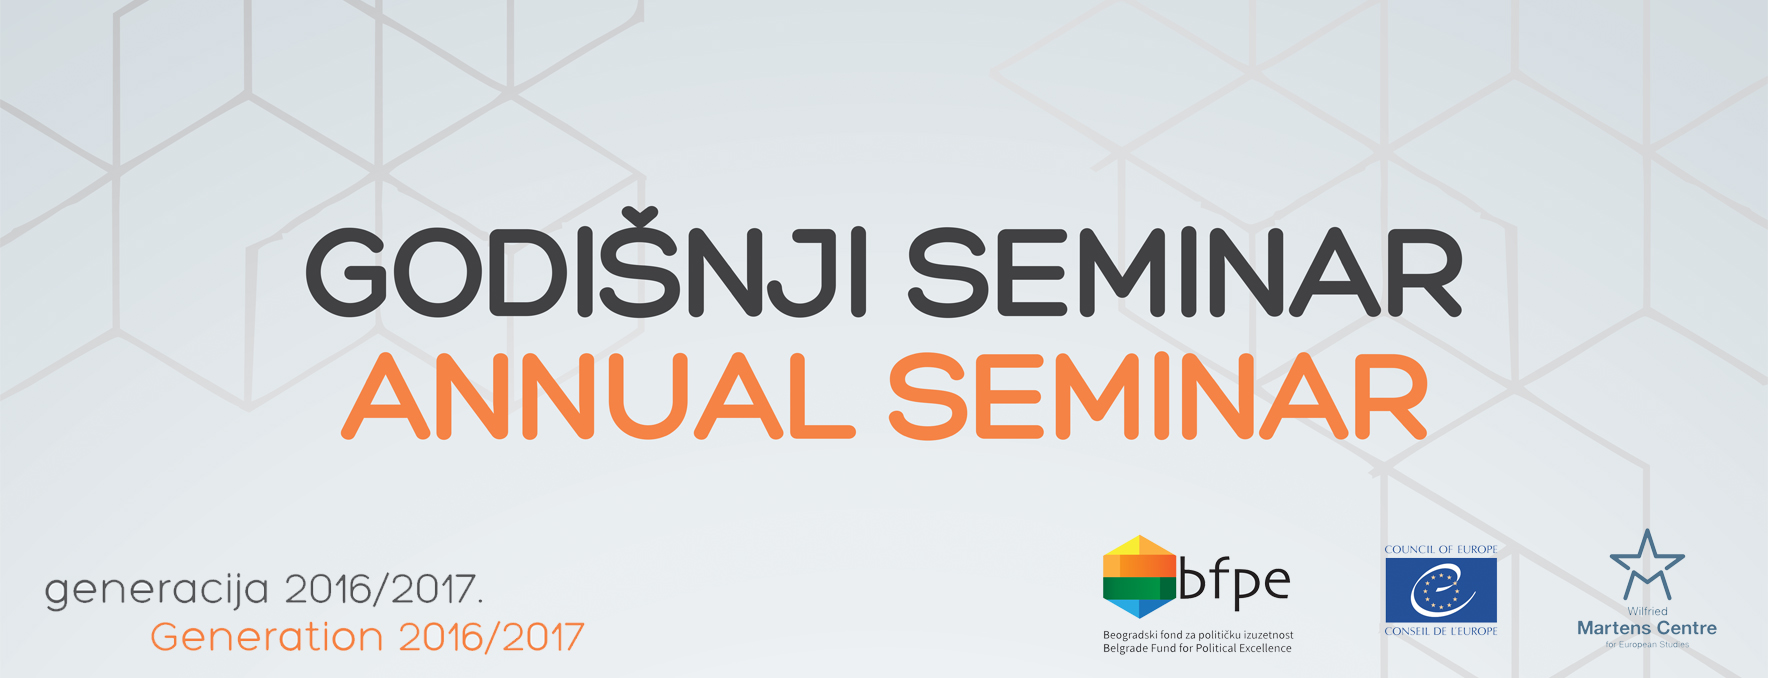 The third national seminar of the 13th generation of the BFPE Annual Seminar